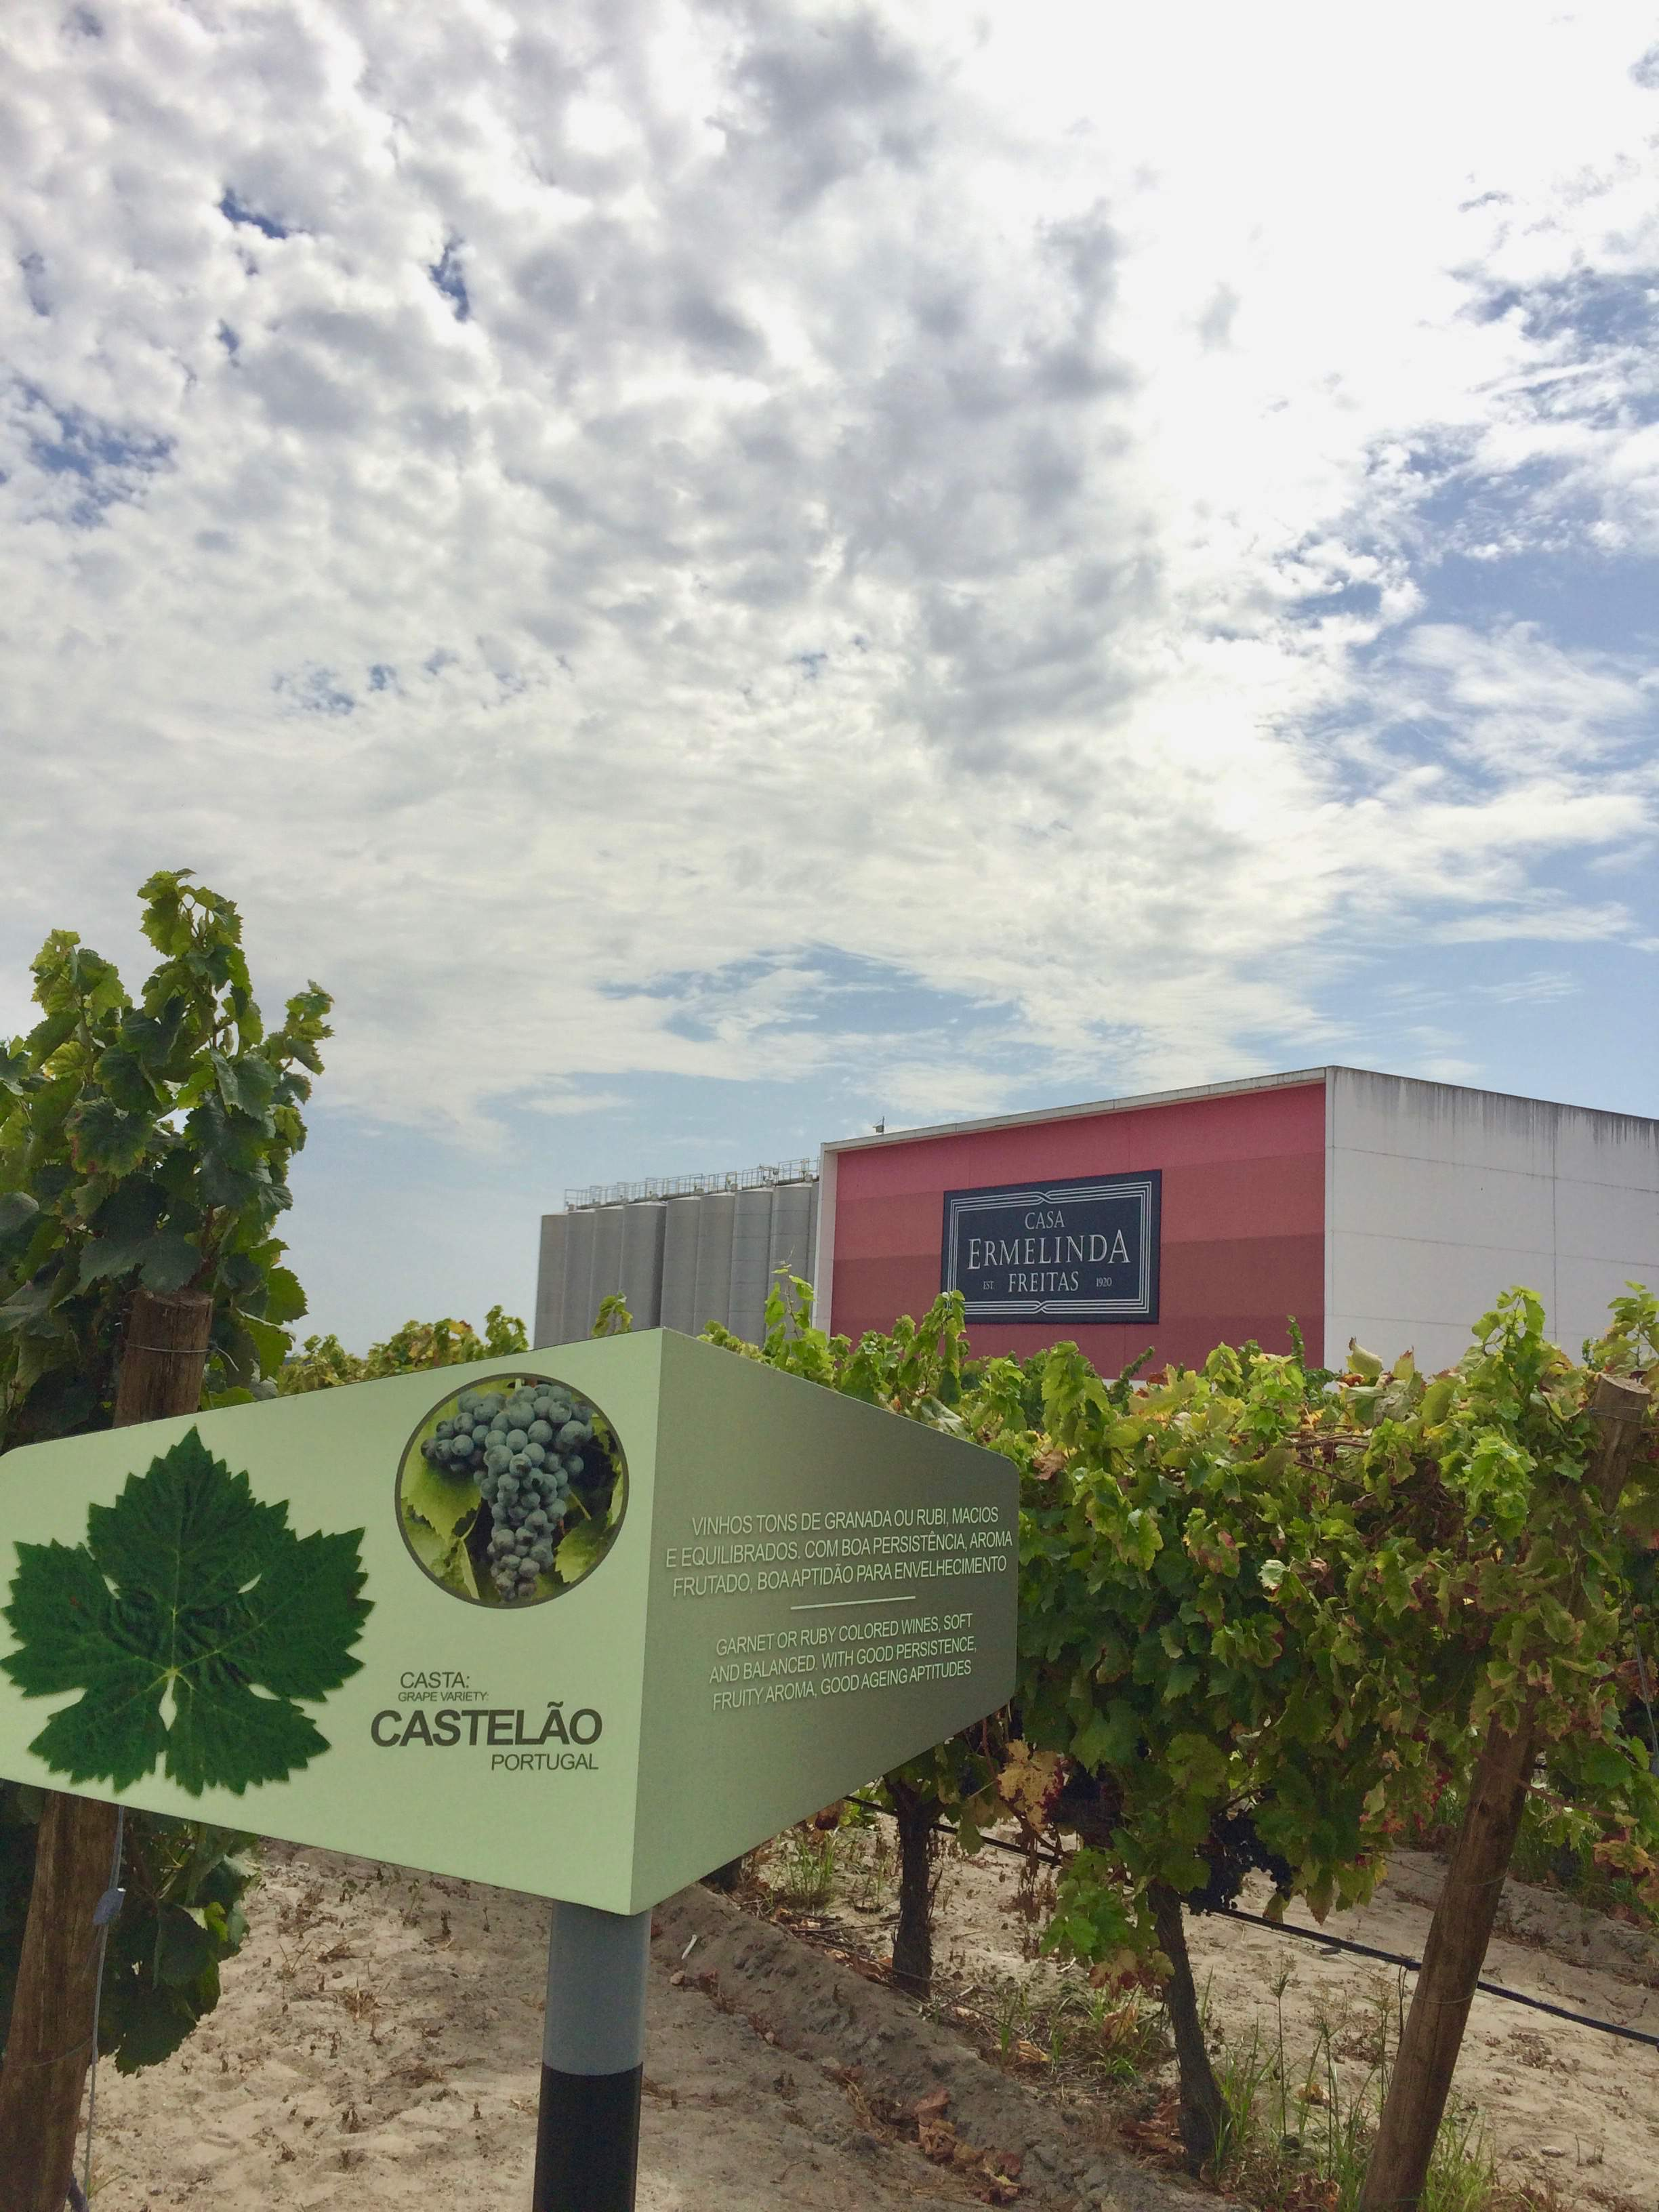 Visiting the vineyards and learning about different types of grapes at Casa Ermelinda Freitas